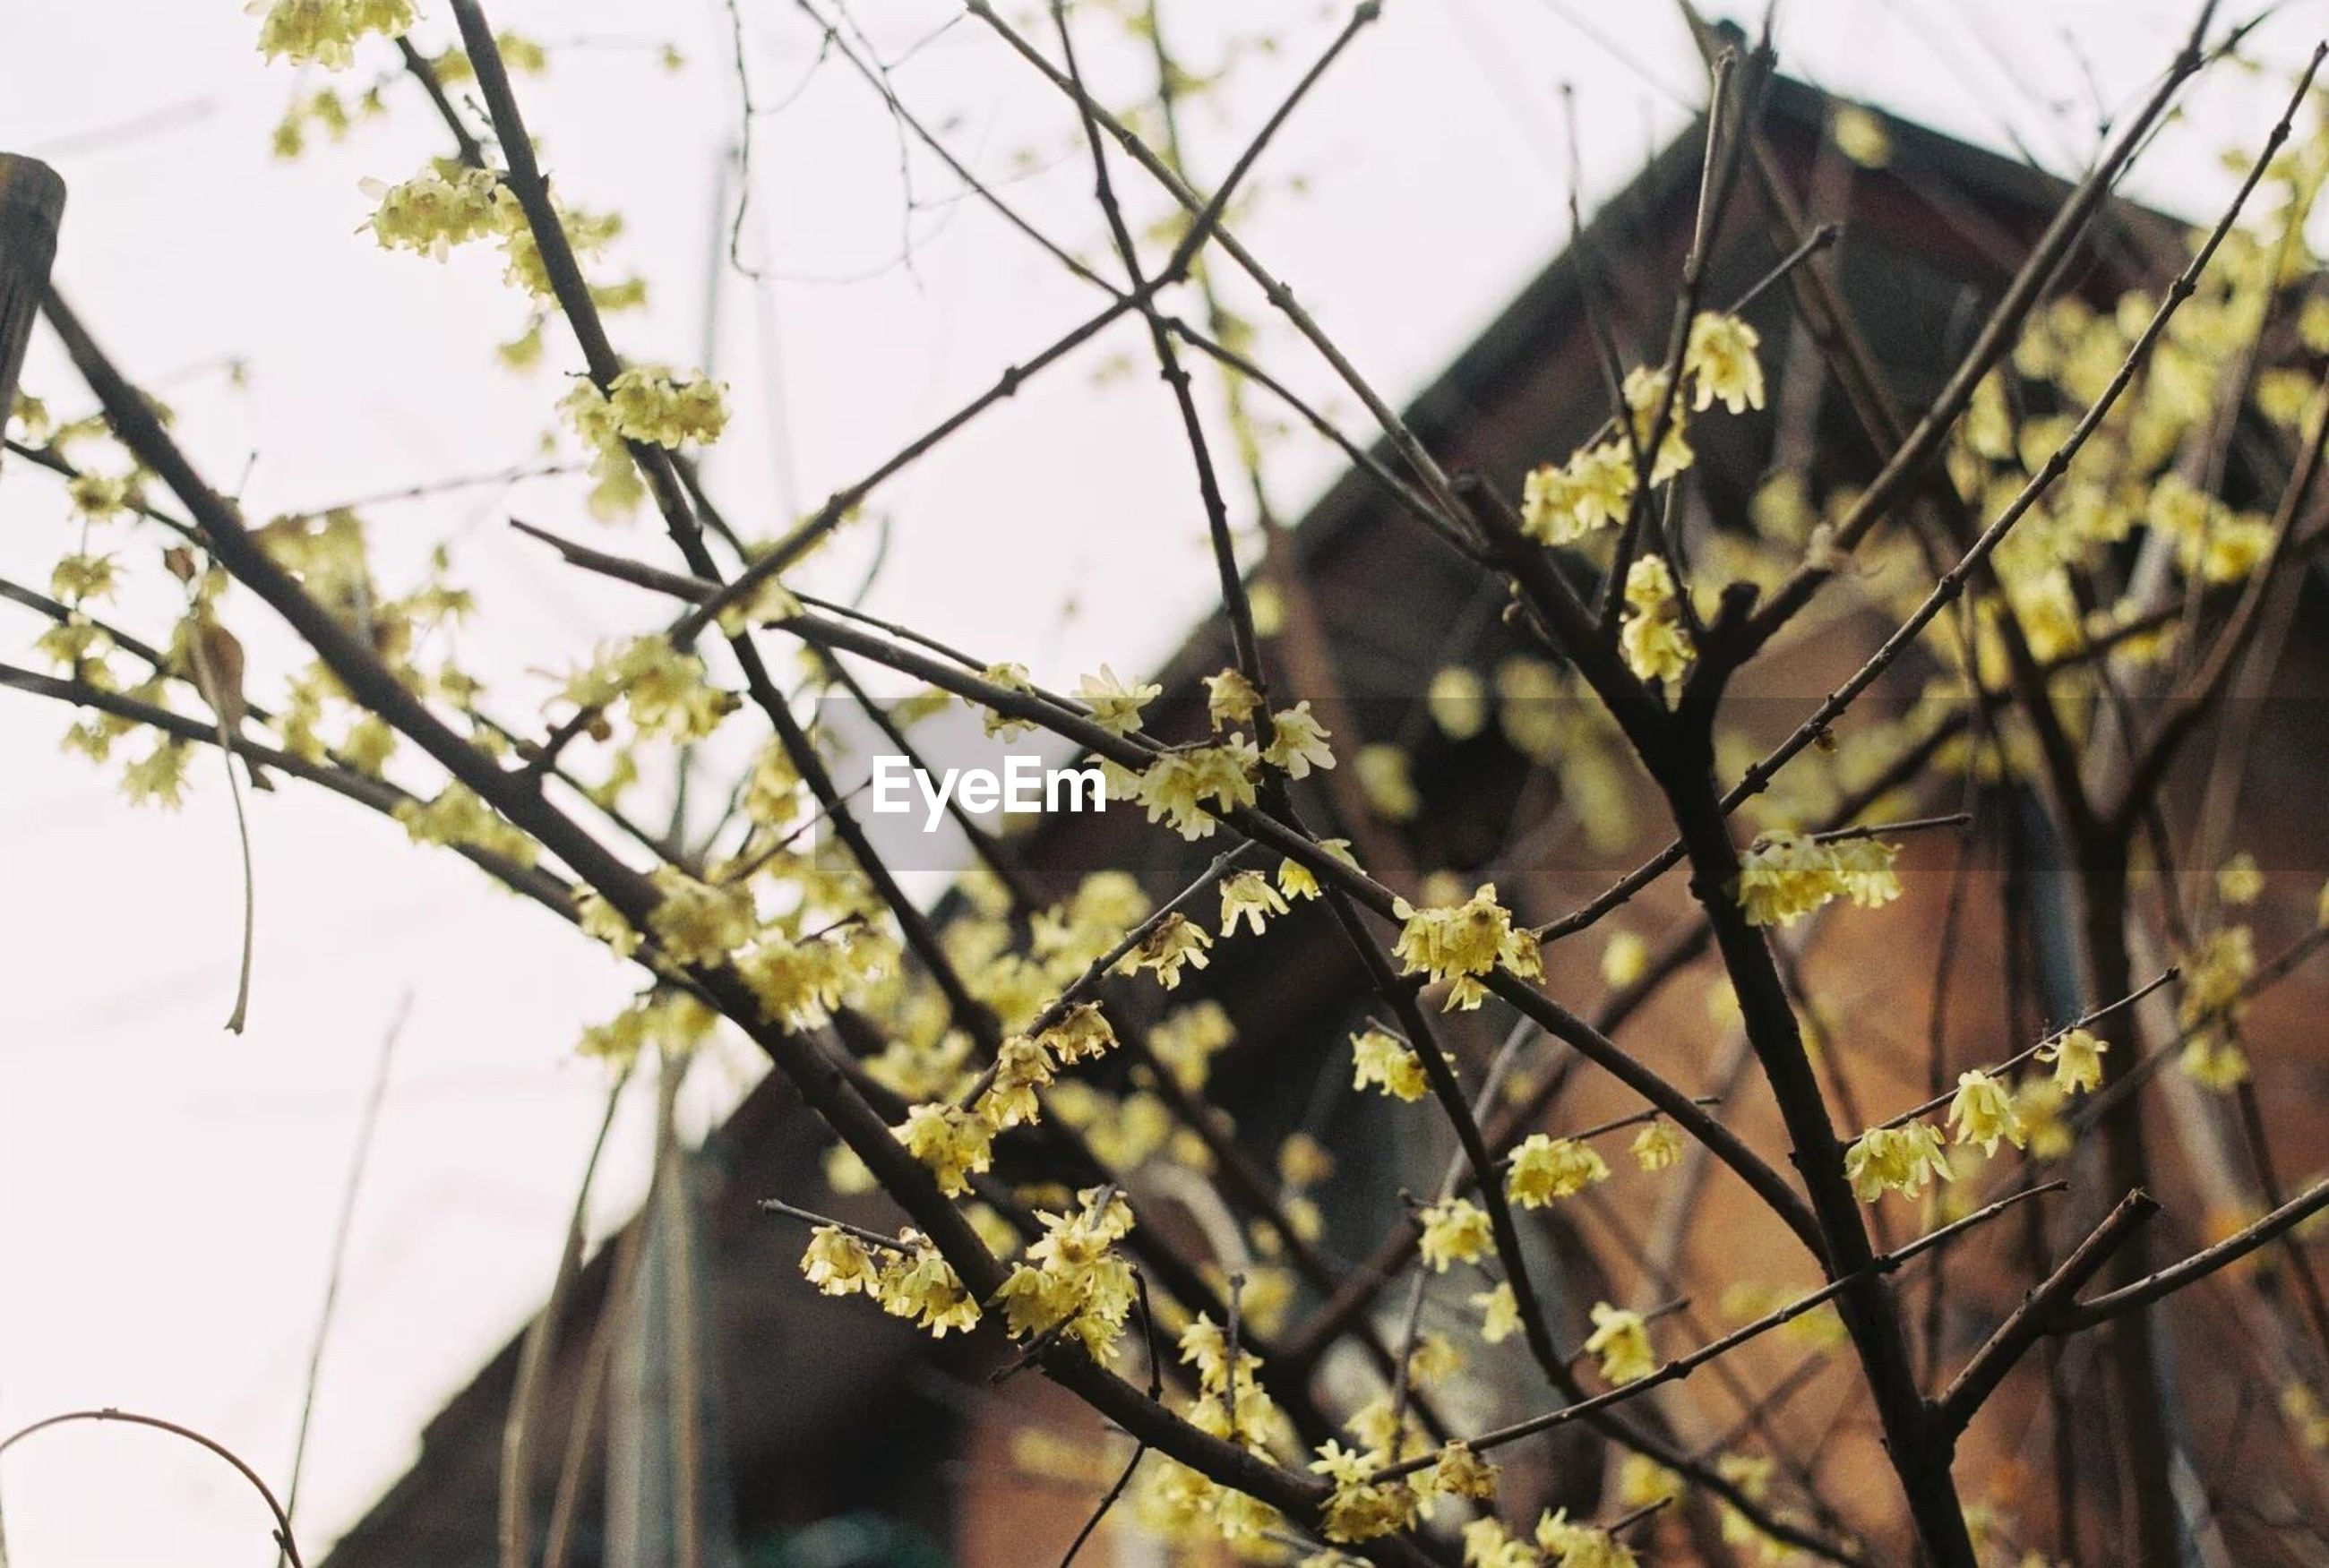 flower, growth, fragility, low angle view, freshness, plant, close-up, architecture, nature, focus on foreground, sky, beauty in nature, day, branch, outdoors, petal, no people, growing, springtime, in bloom, flower head, blooming